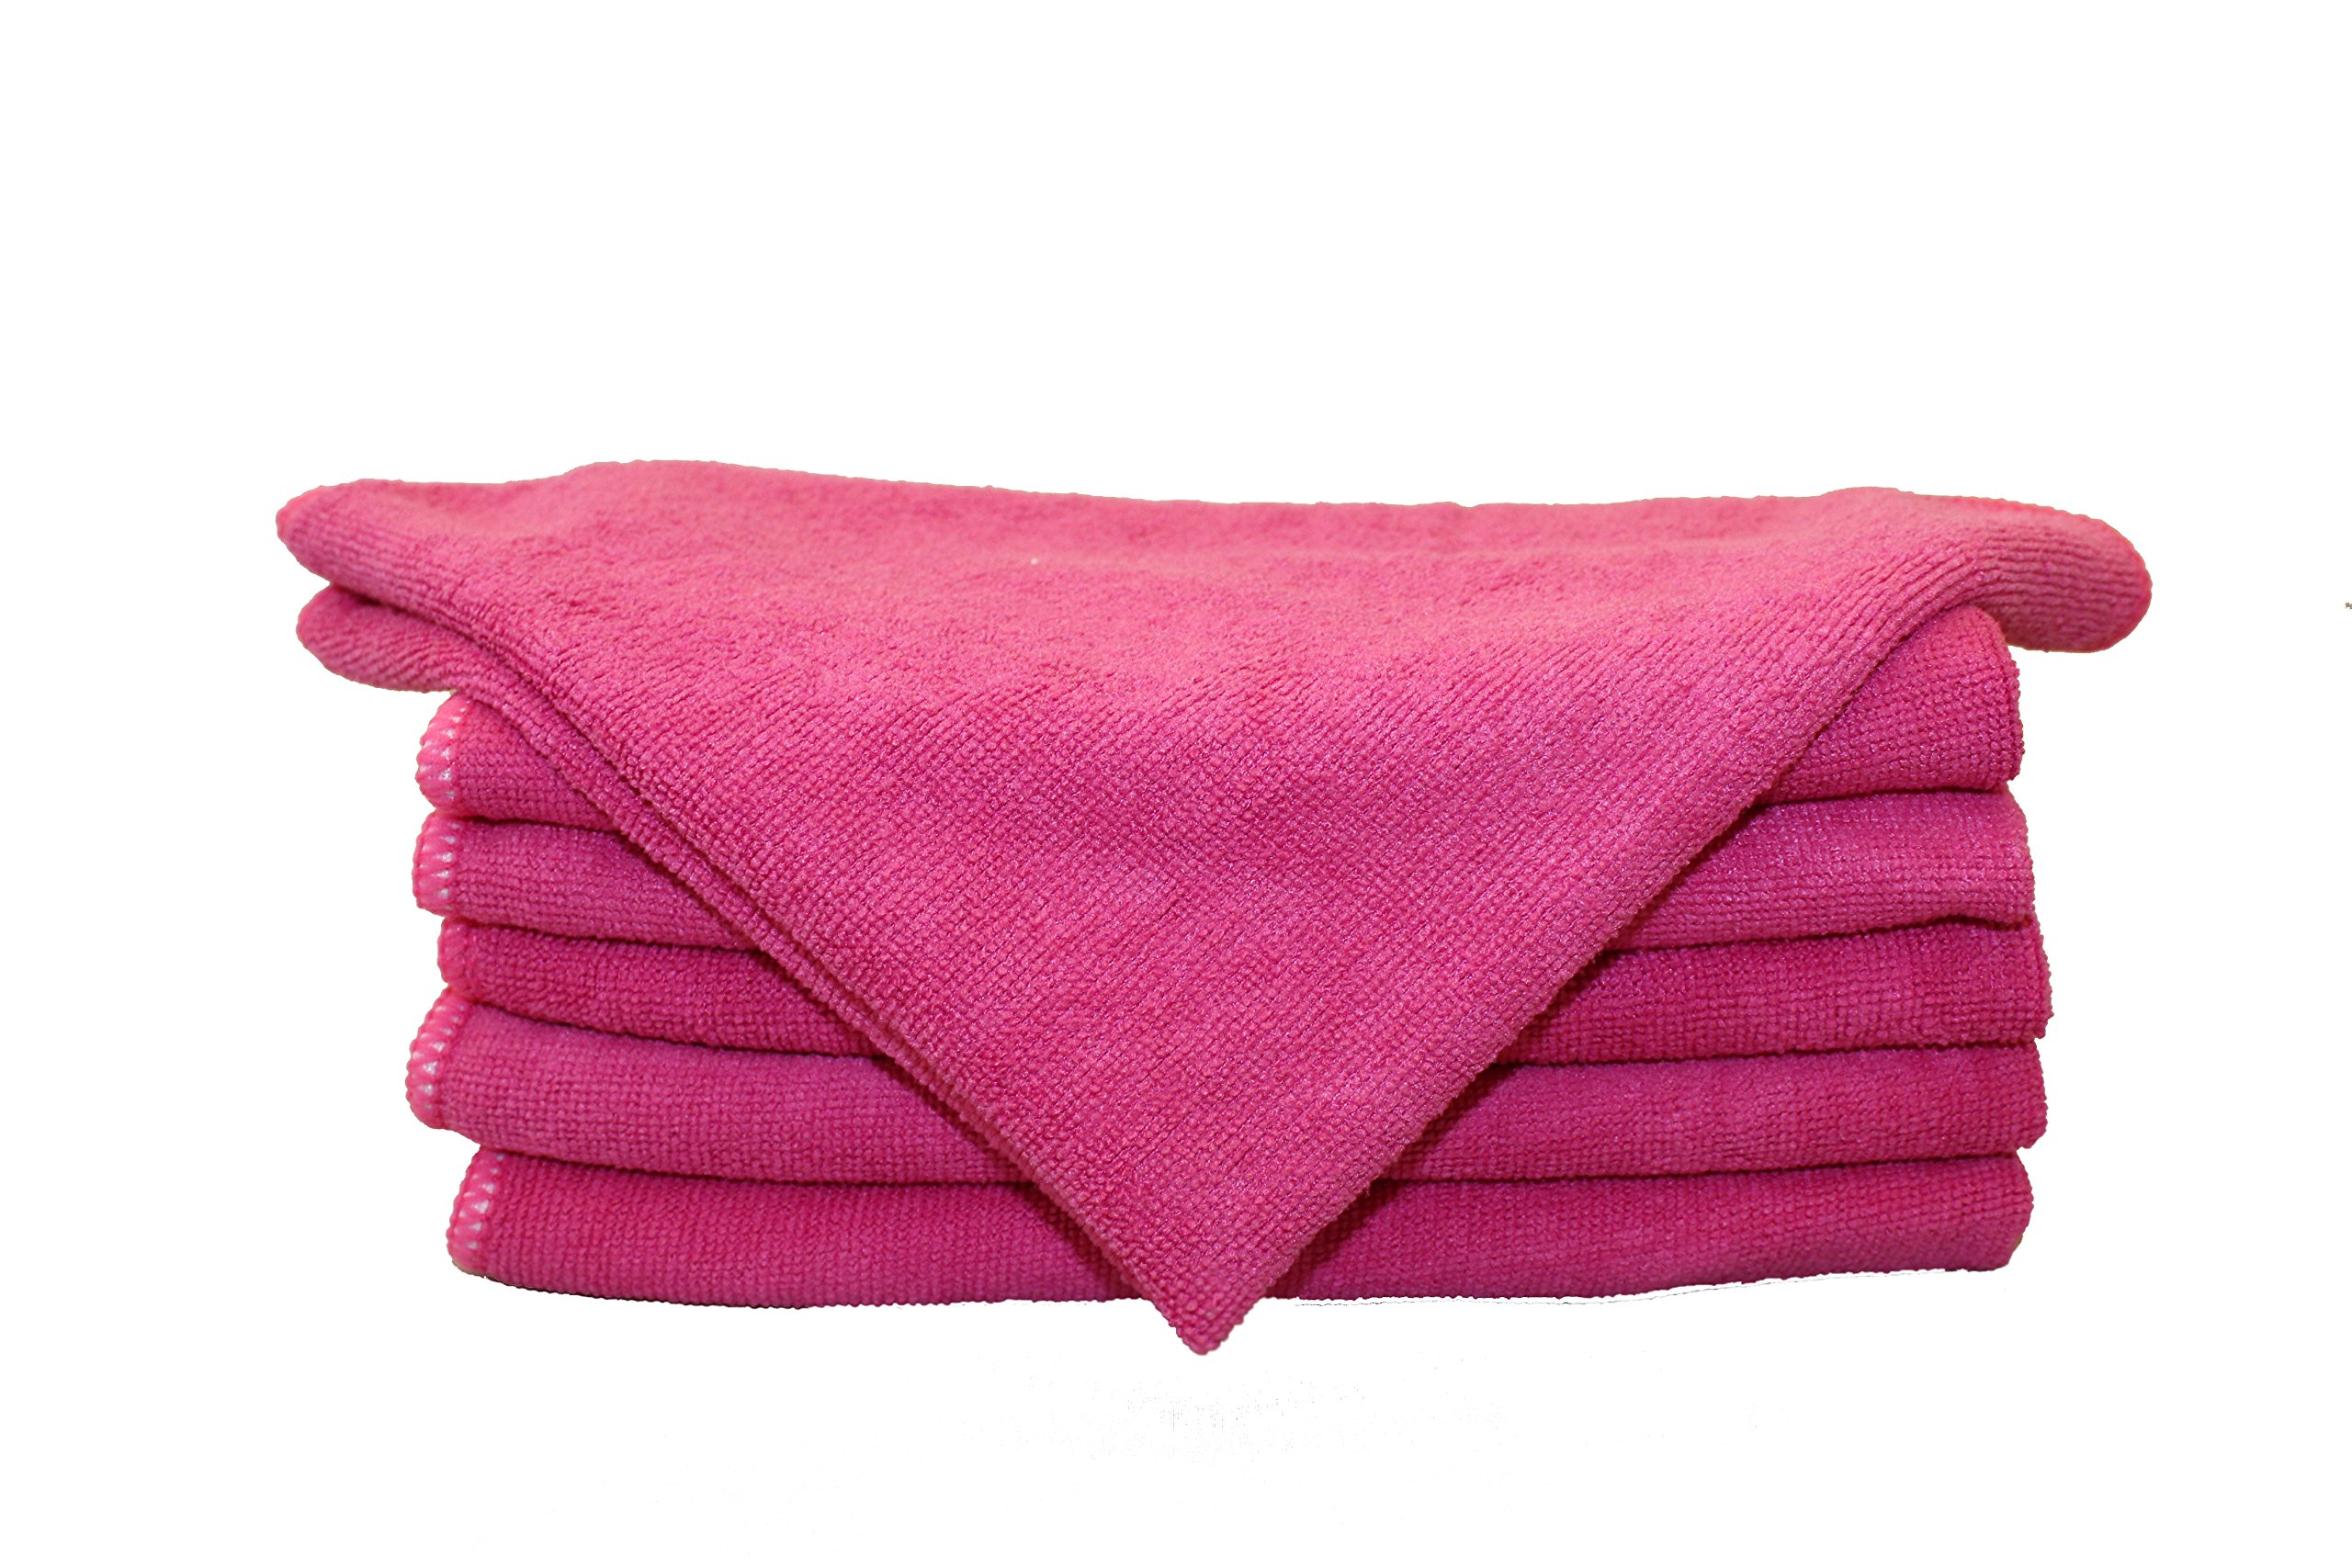 Free Shipping 192pcs Mr.towels Imports Warp Knit Microfiber Cleaning Towels 16'' X 16'' - Hot Pink